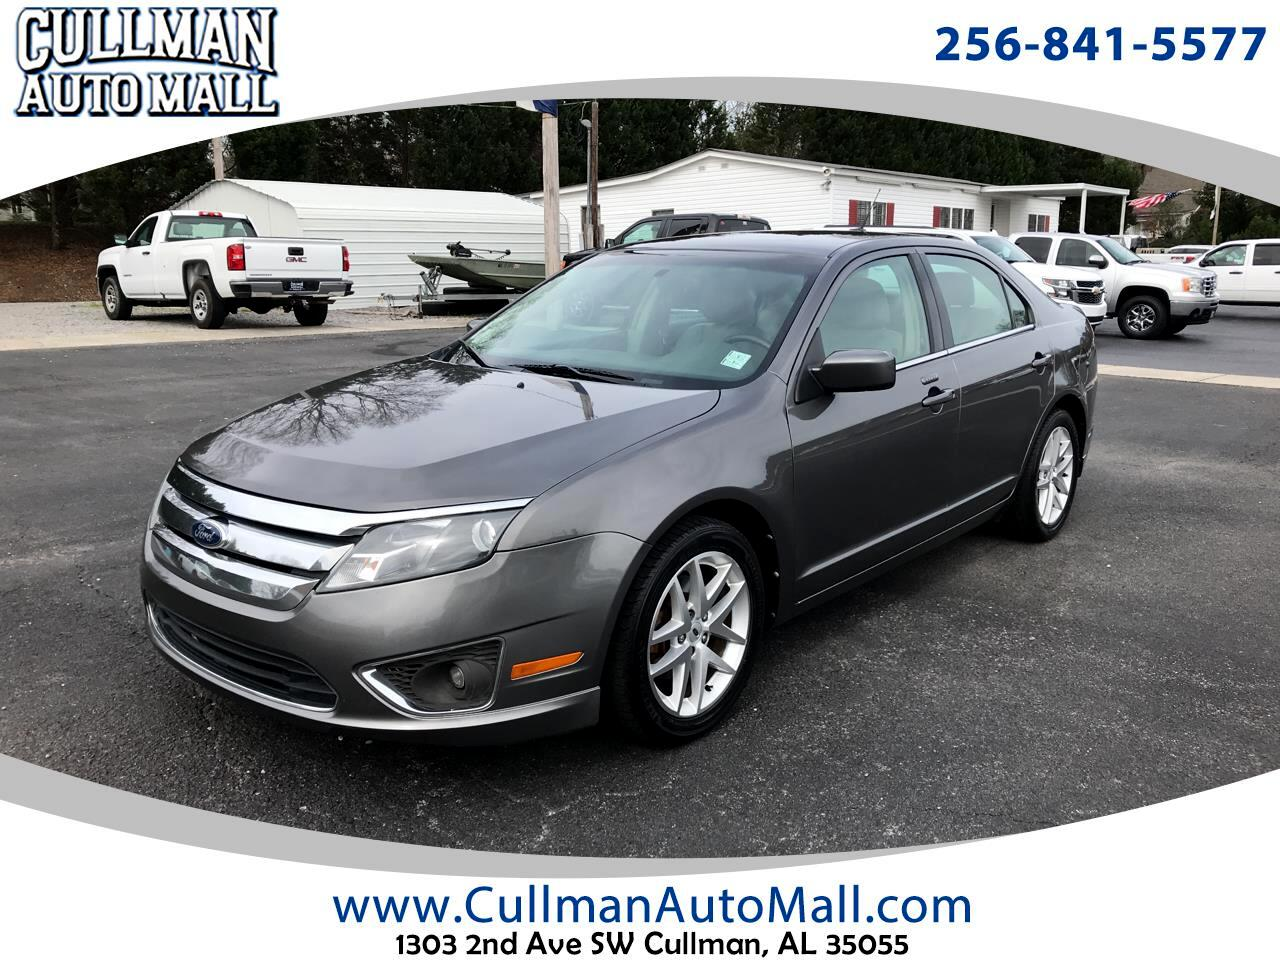 Ford Fusion 4dr Sdn I4 SEL 2012